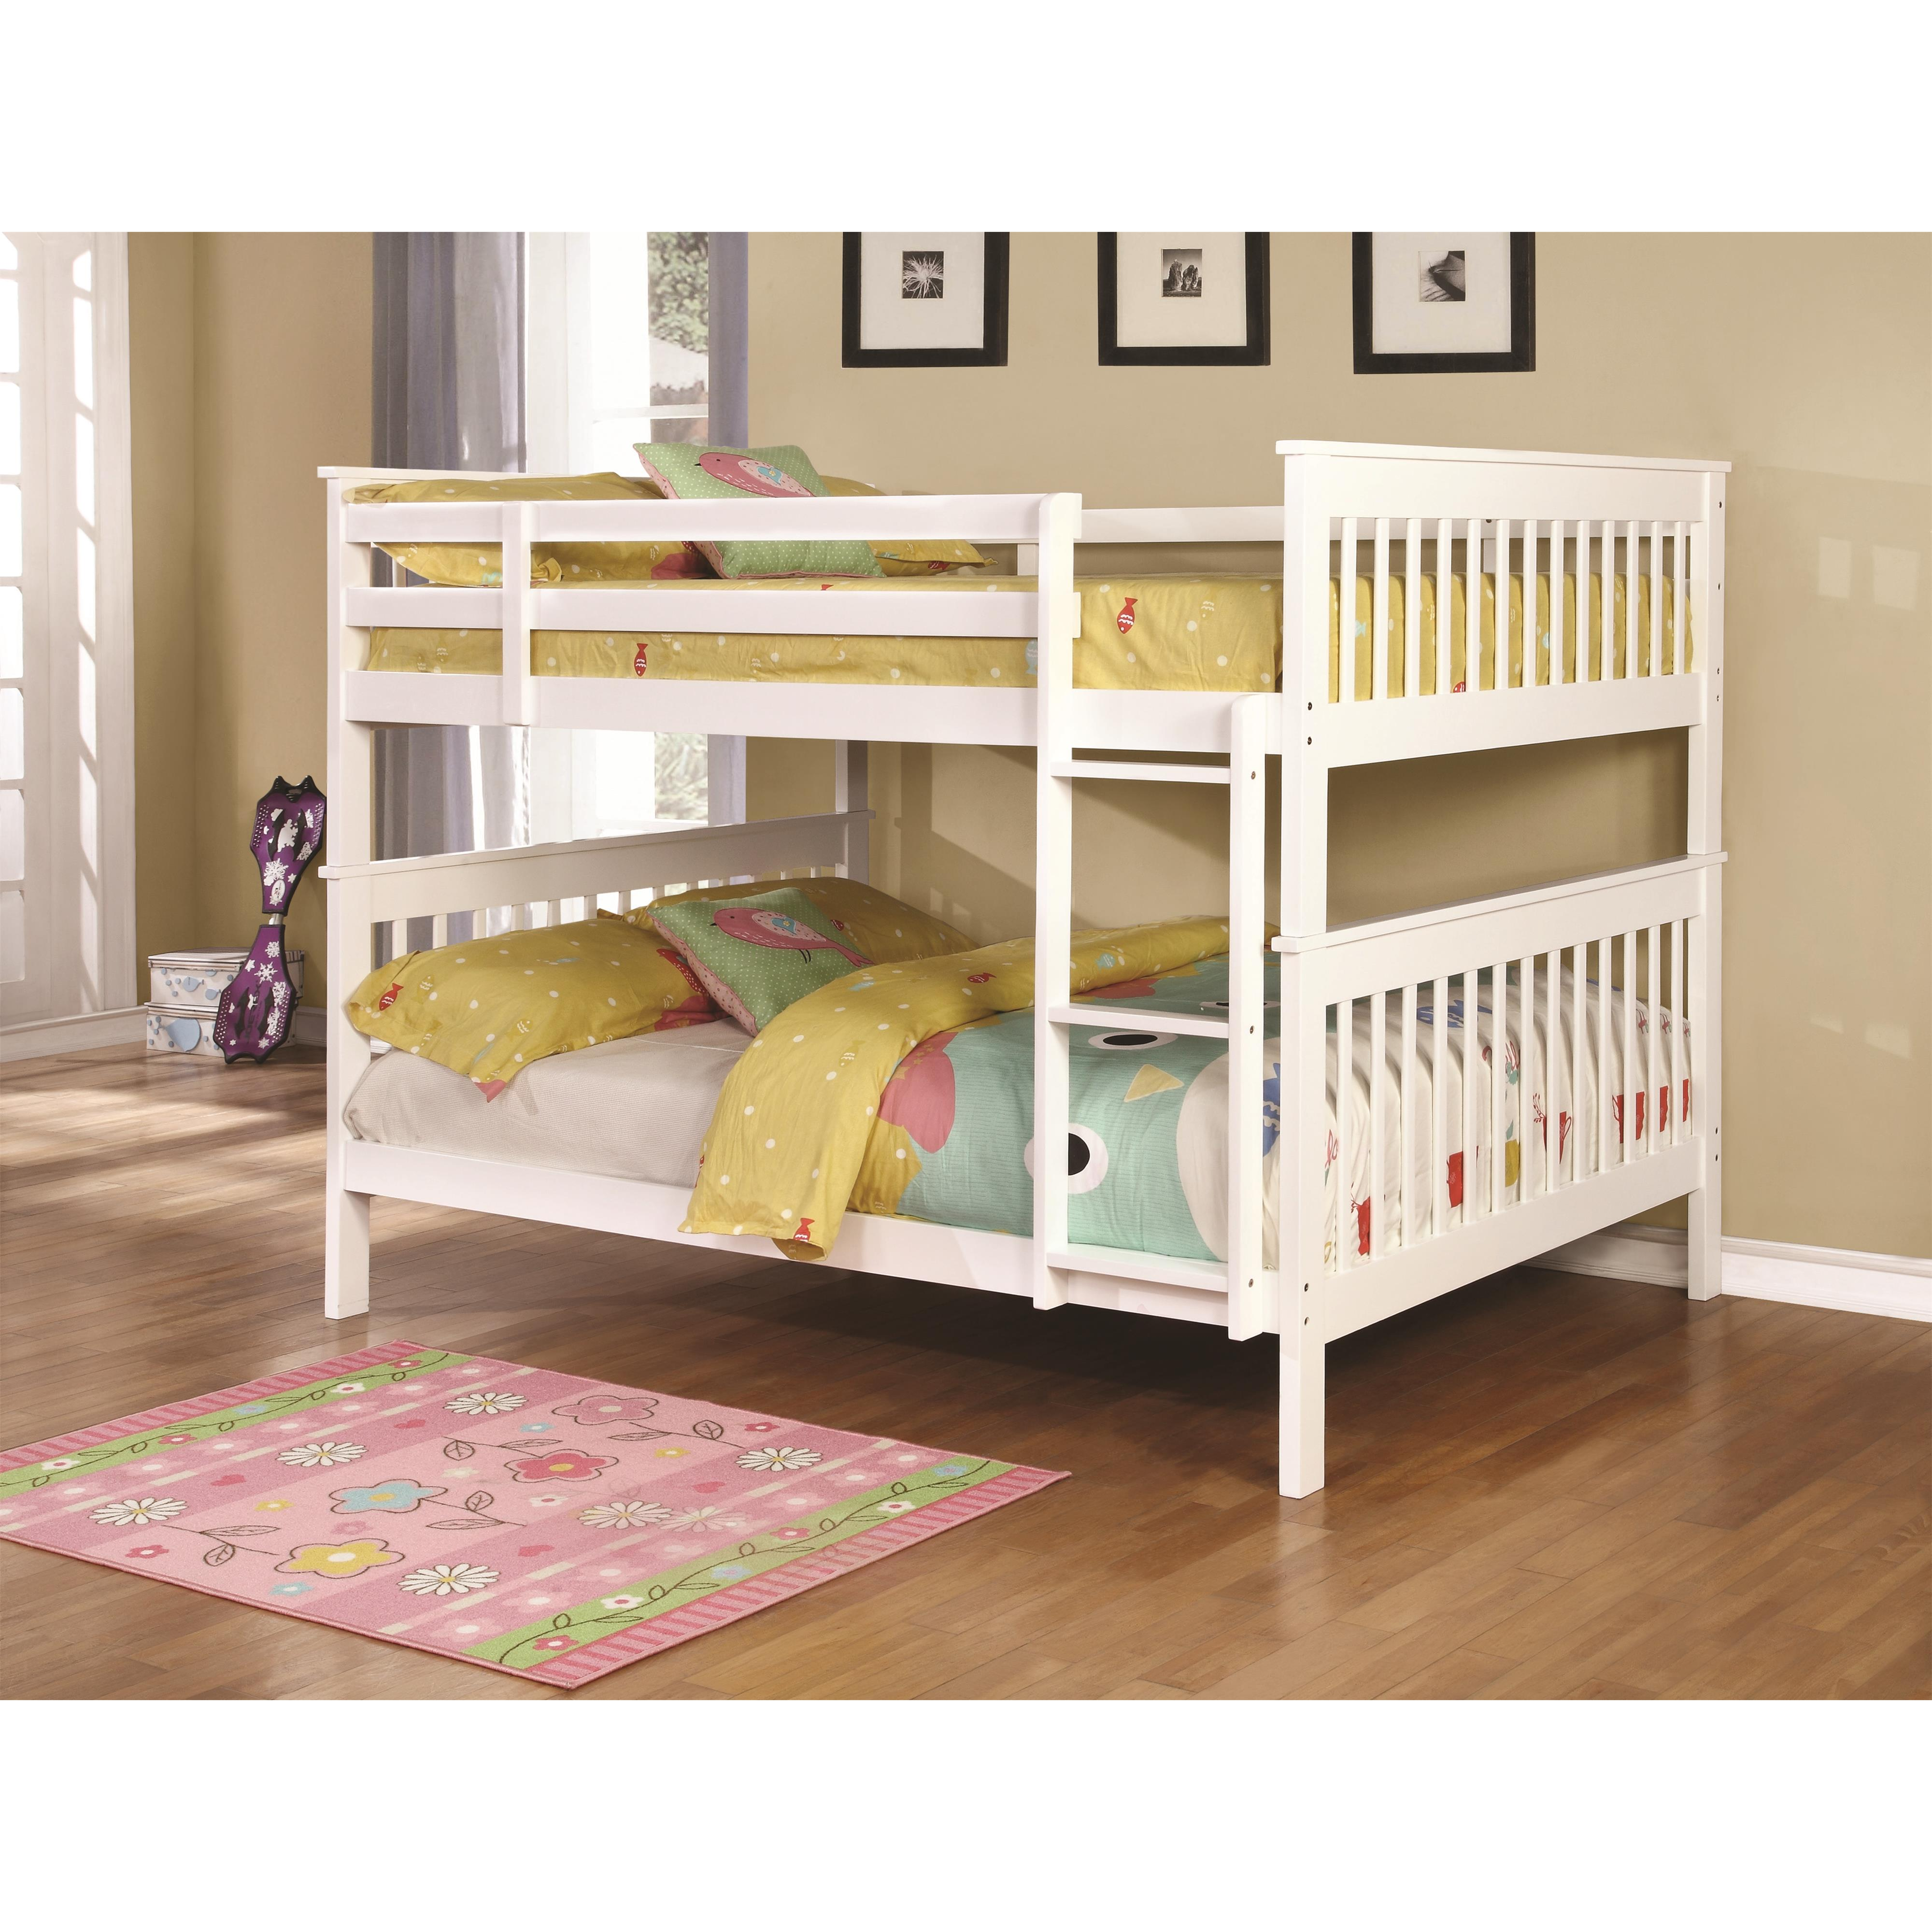 Coaster Bunks Full over Full Bunk Bed - Item Number: 460360